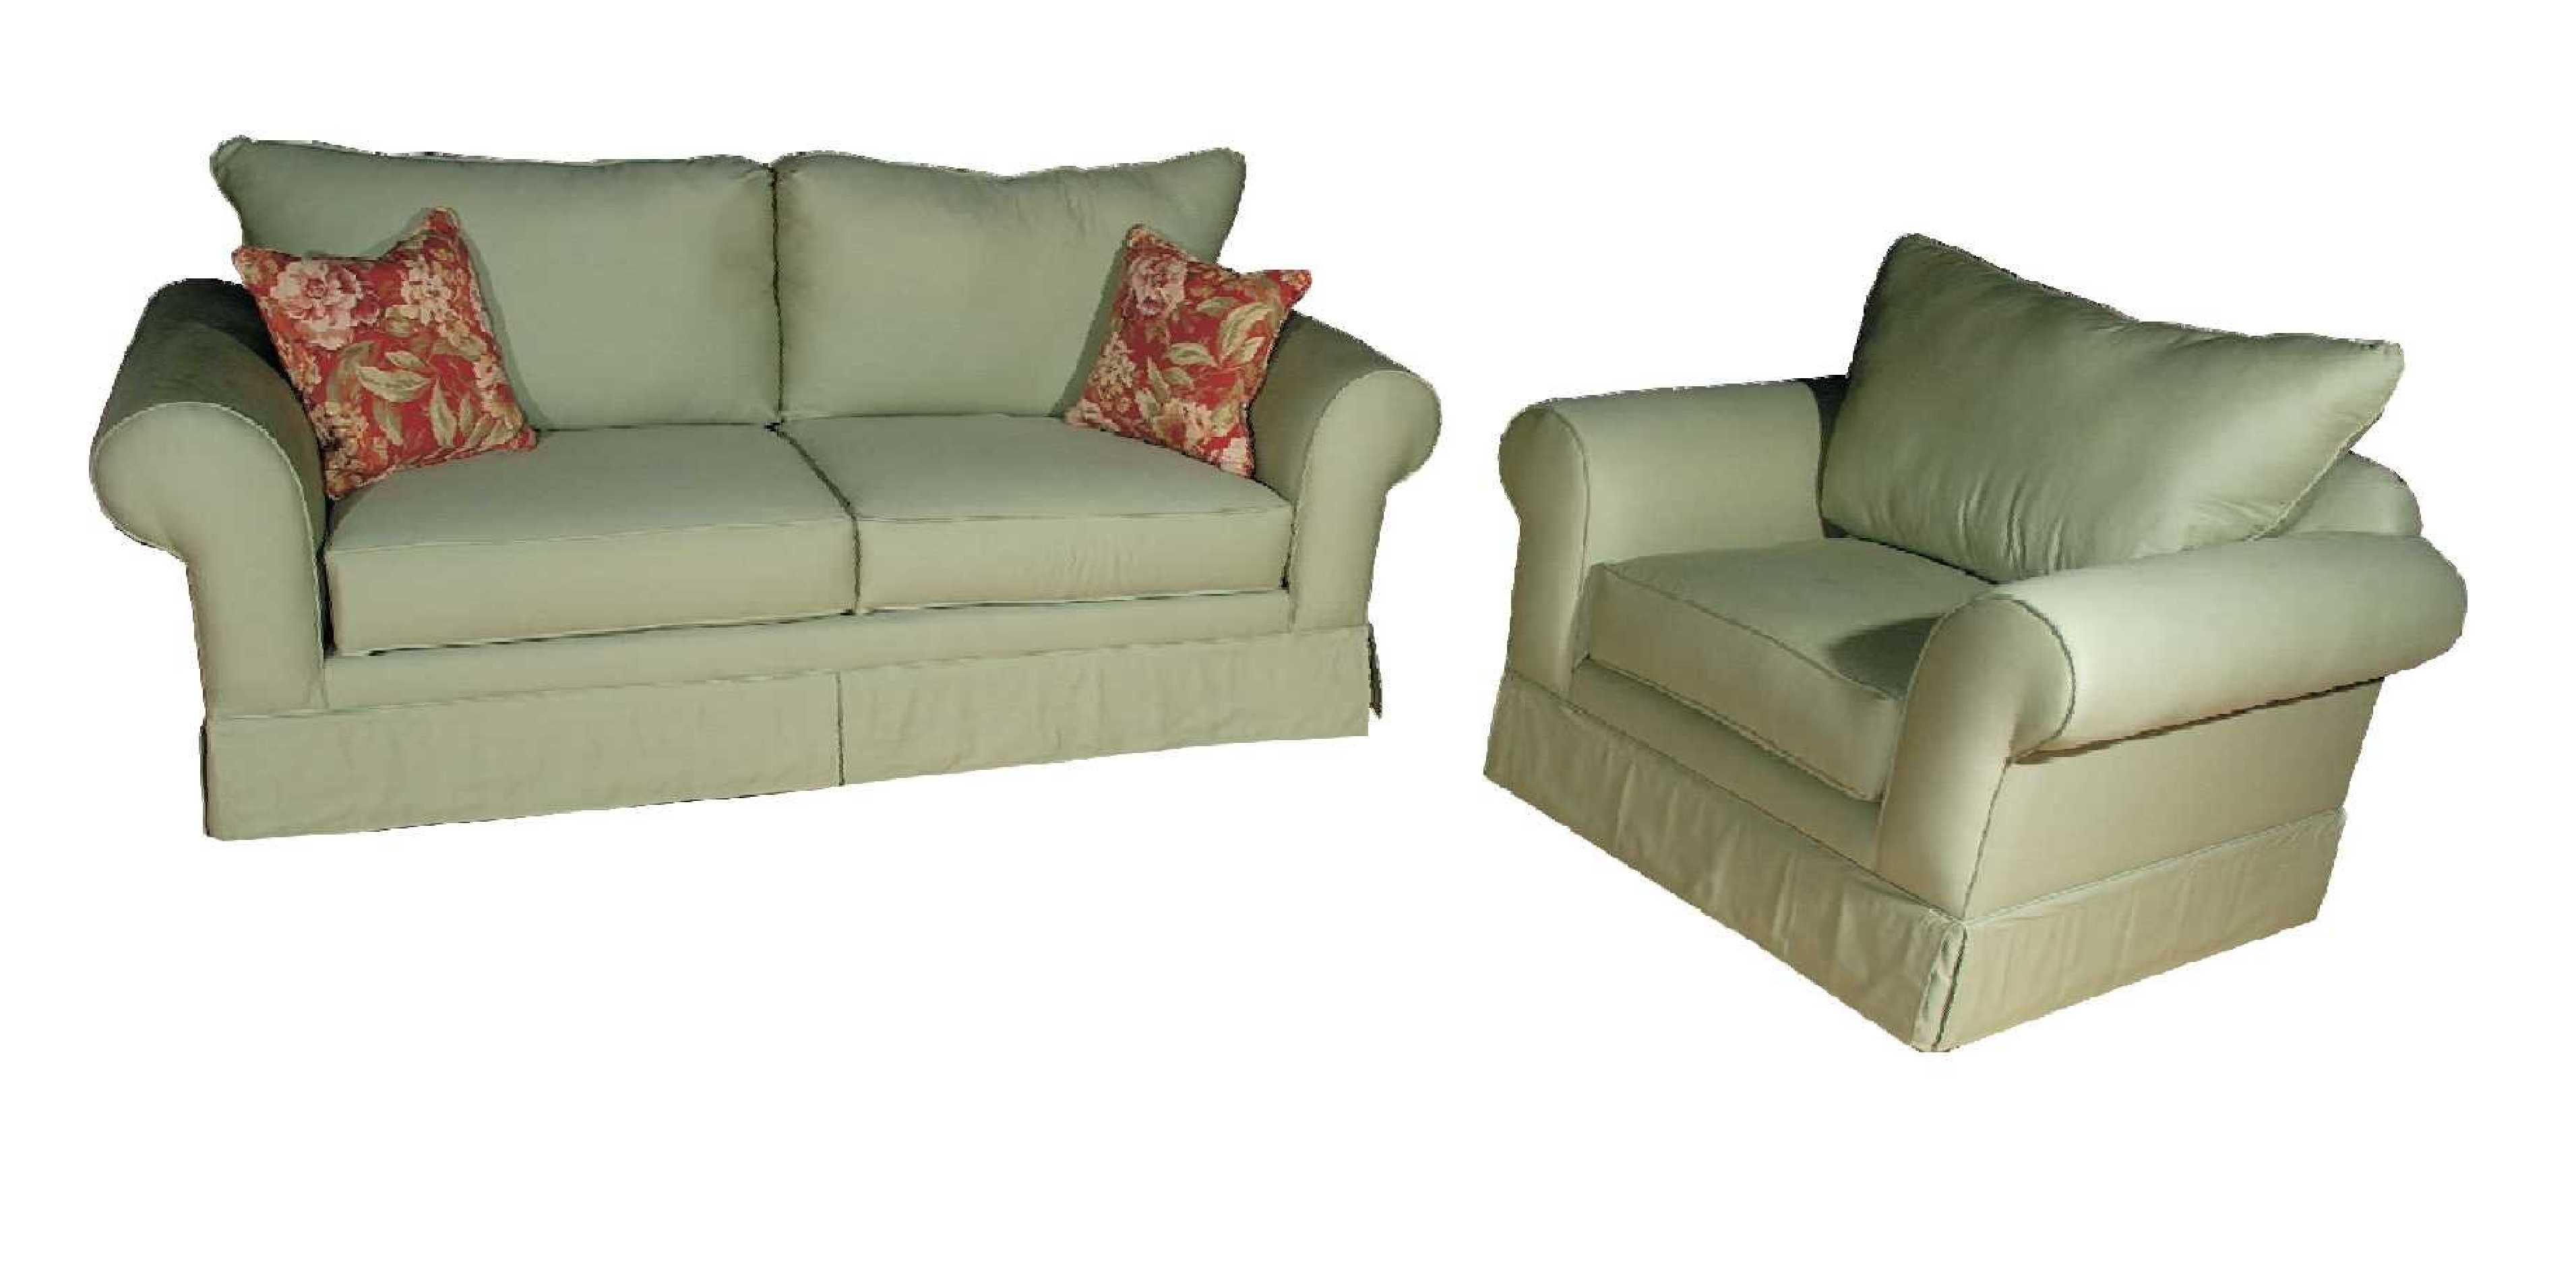 Sofas Factory Sofa Factory Furniture Factory Outlet Pin La Cienega